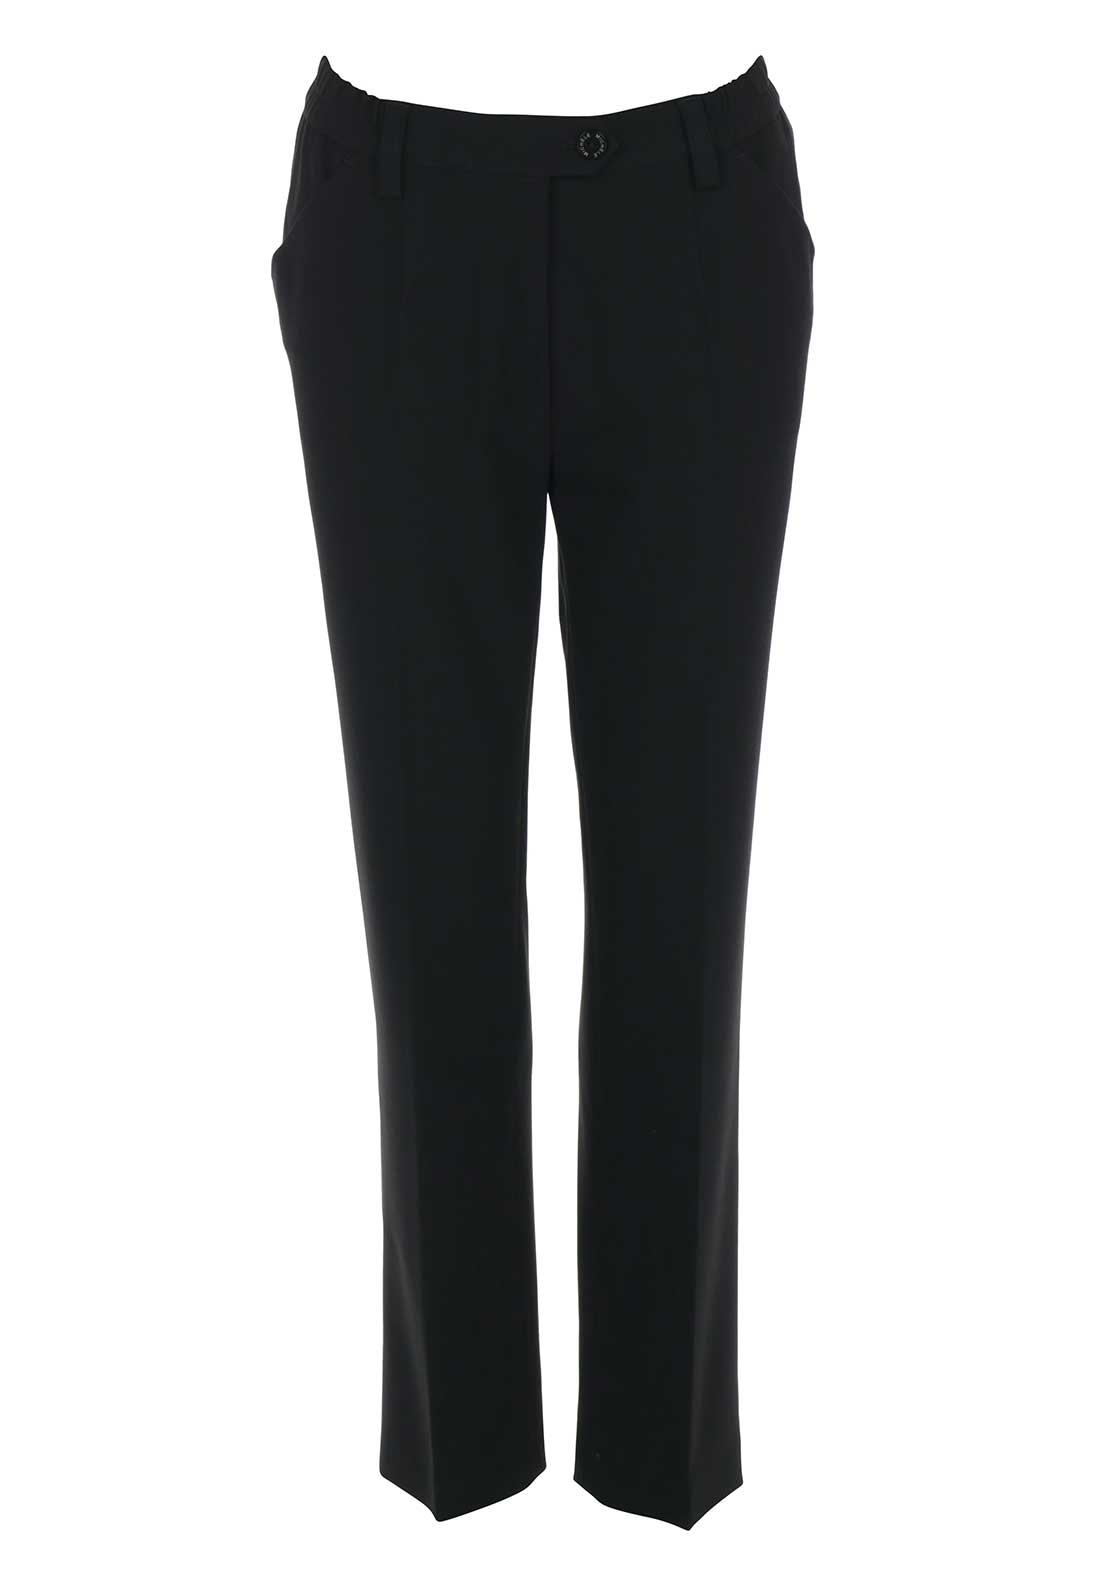 Michele Elasticated Waist Slim Leg Regular Length Trousers, Black